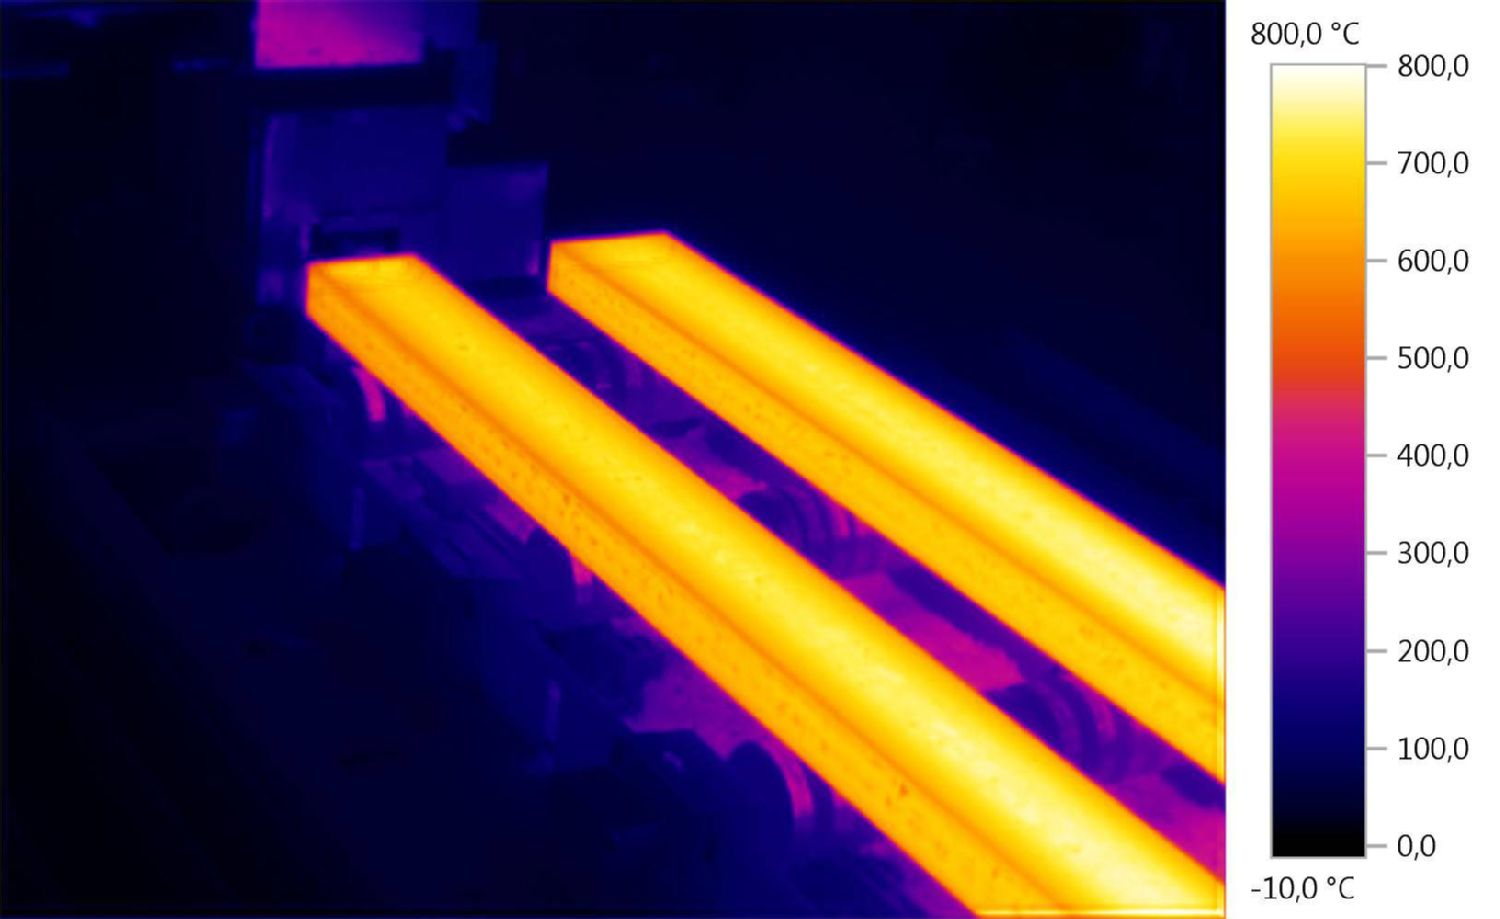 Thermal image of high temperatures in industry